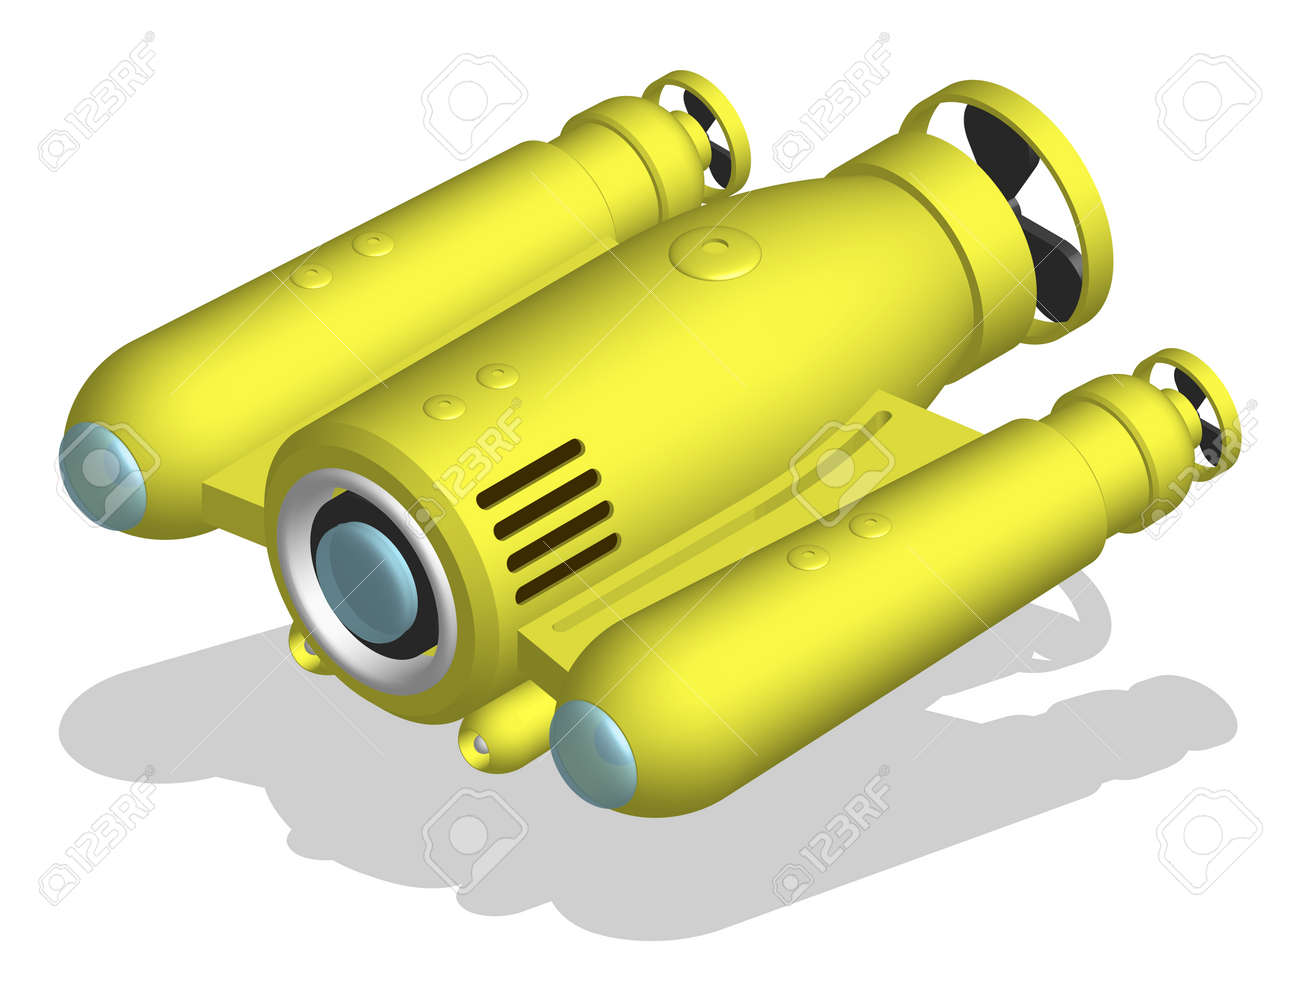 autonomous underwater robot drone for seabed exploration and deep sea video filming. 3d vector - 168969281